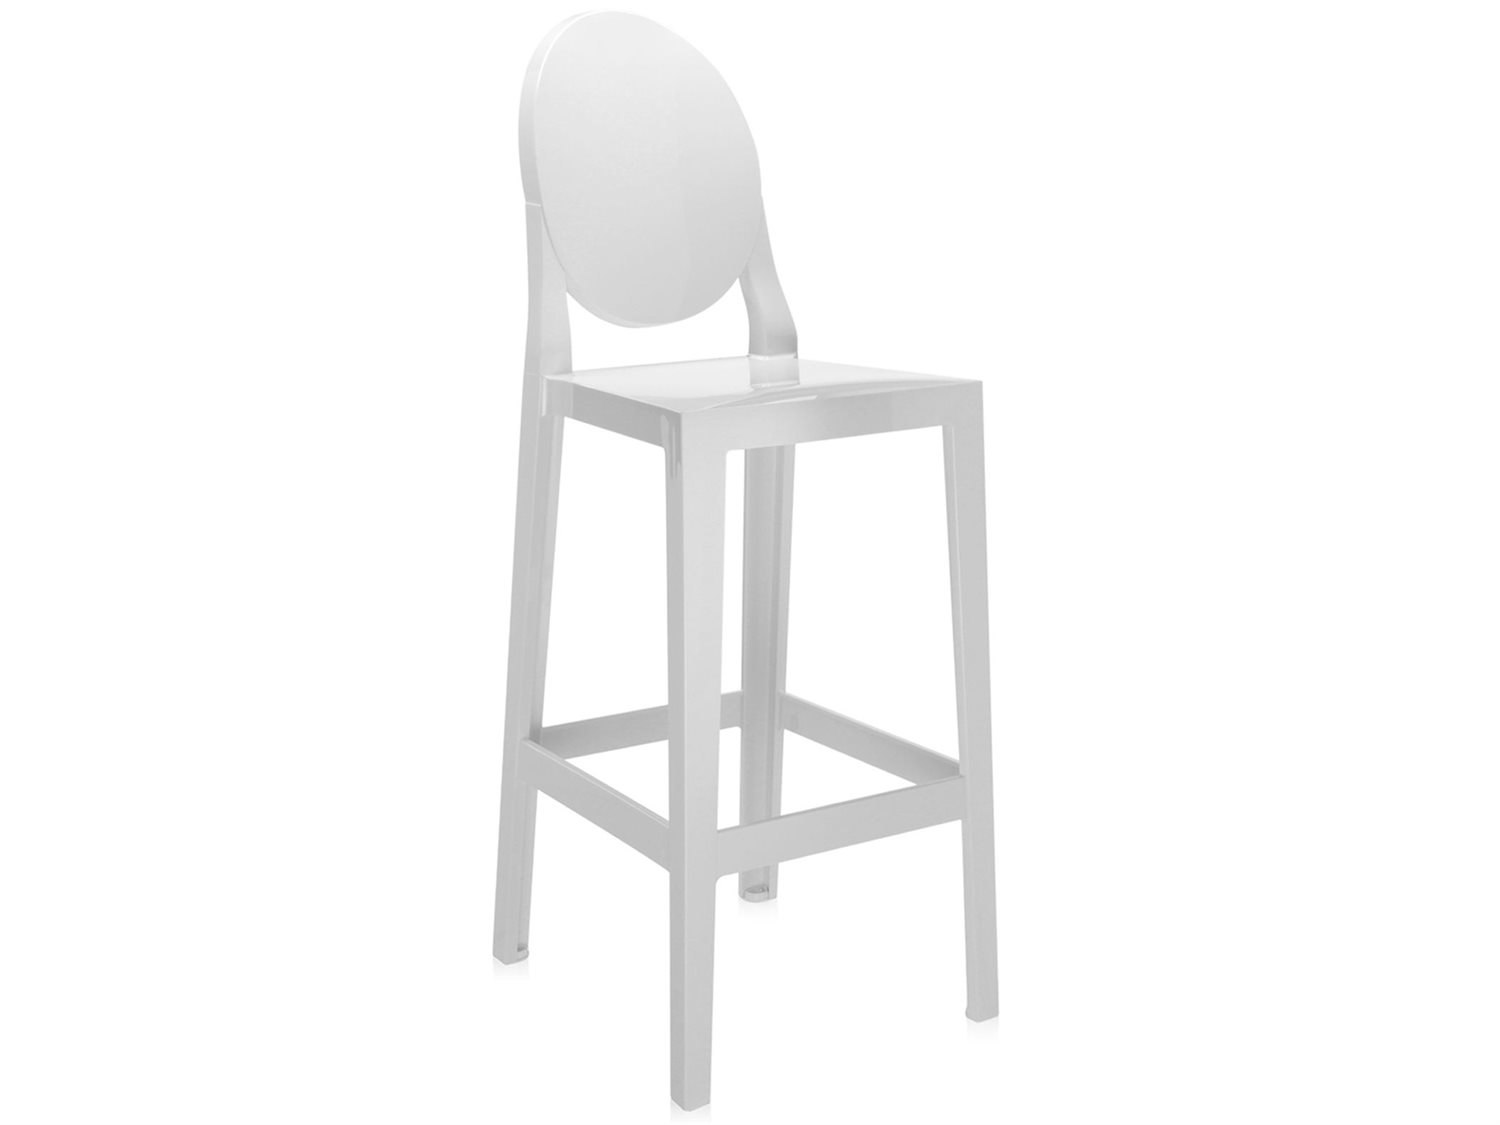 Astounding Kartell Outdoor One More Opaque White Resin Bar Stool Sold In 2 Bralicious Painted Fabric Chair Ideas Braliciousco